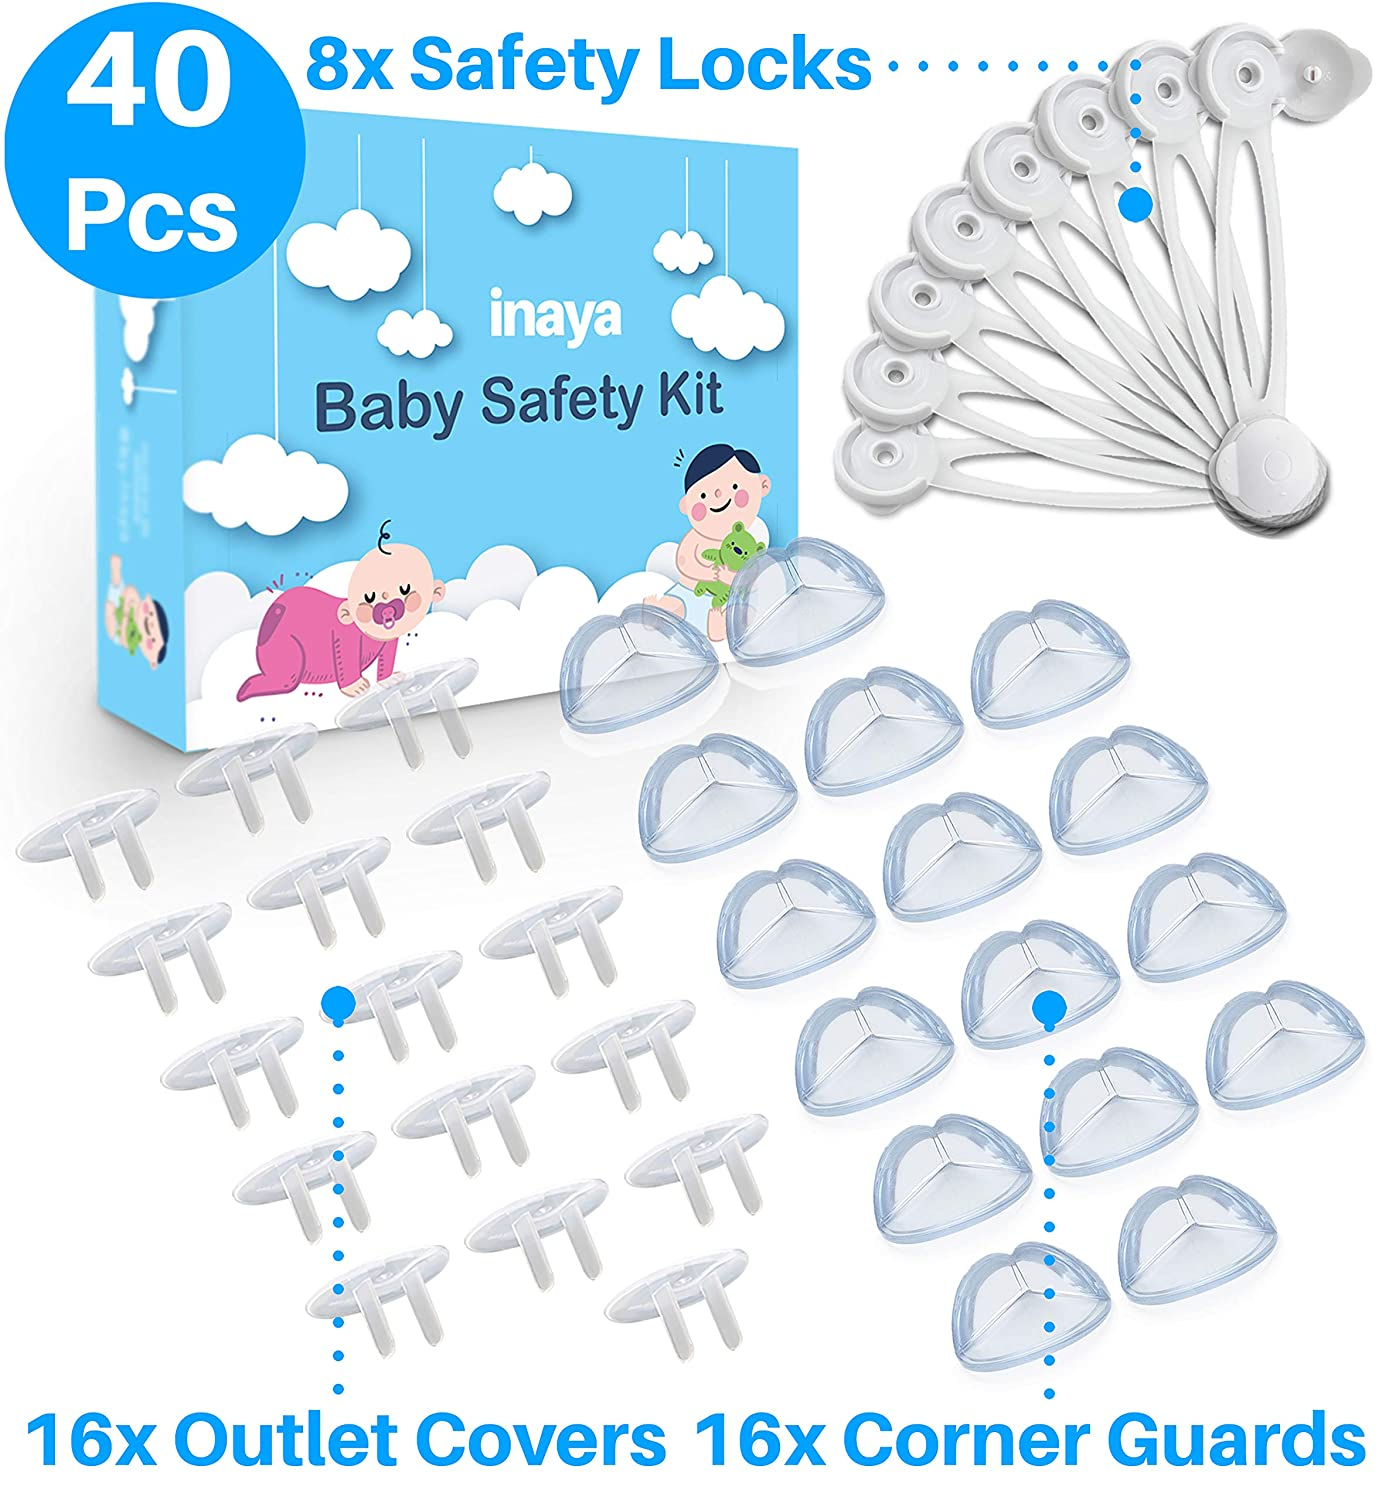 Complete Baby Proofing Kit - 8 Safety Locks, 16 Corner Guards, 16 Outlet Covers - Accident Proof Devices to Keep Your Child Safe at Home - Inaya - Great Gift for Baby Shower & Baby Registry